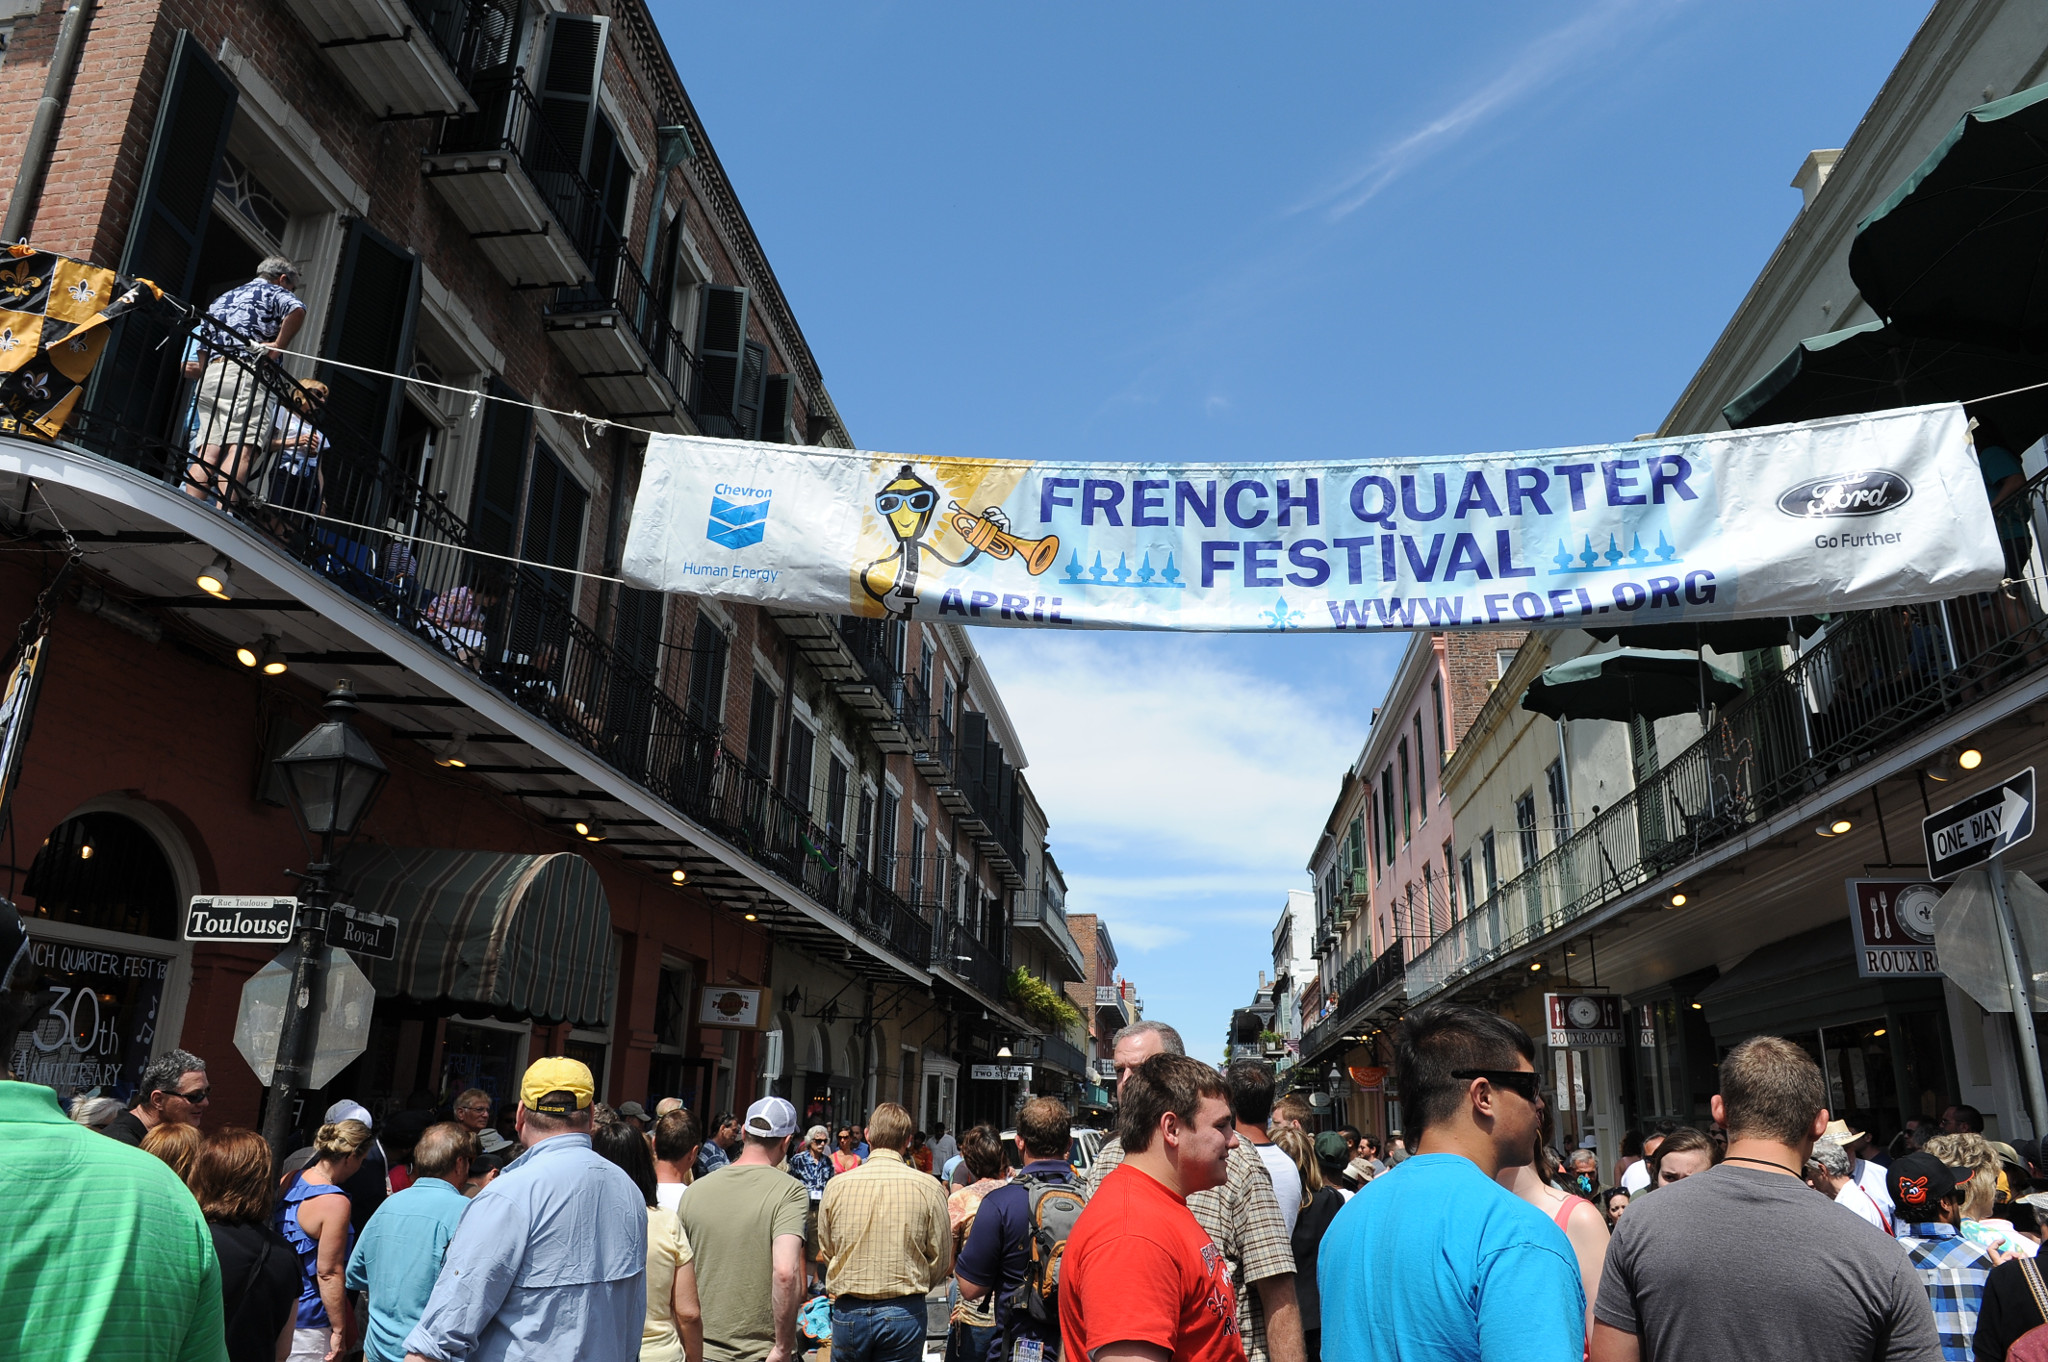 French Quarter Festival. (Photo via New Orleans Tourism Marketing Corp.)